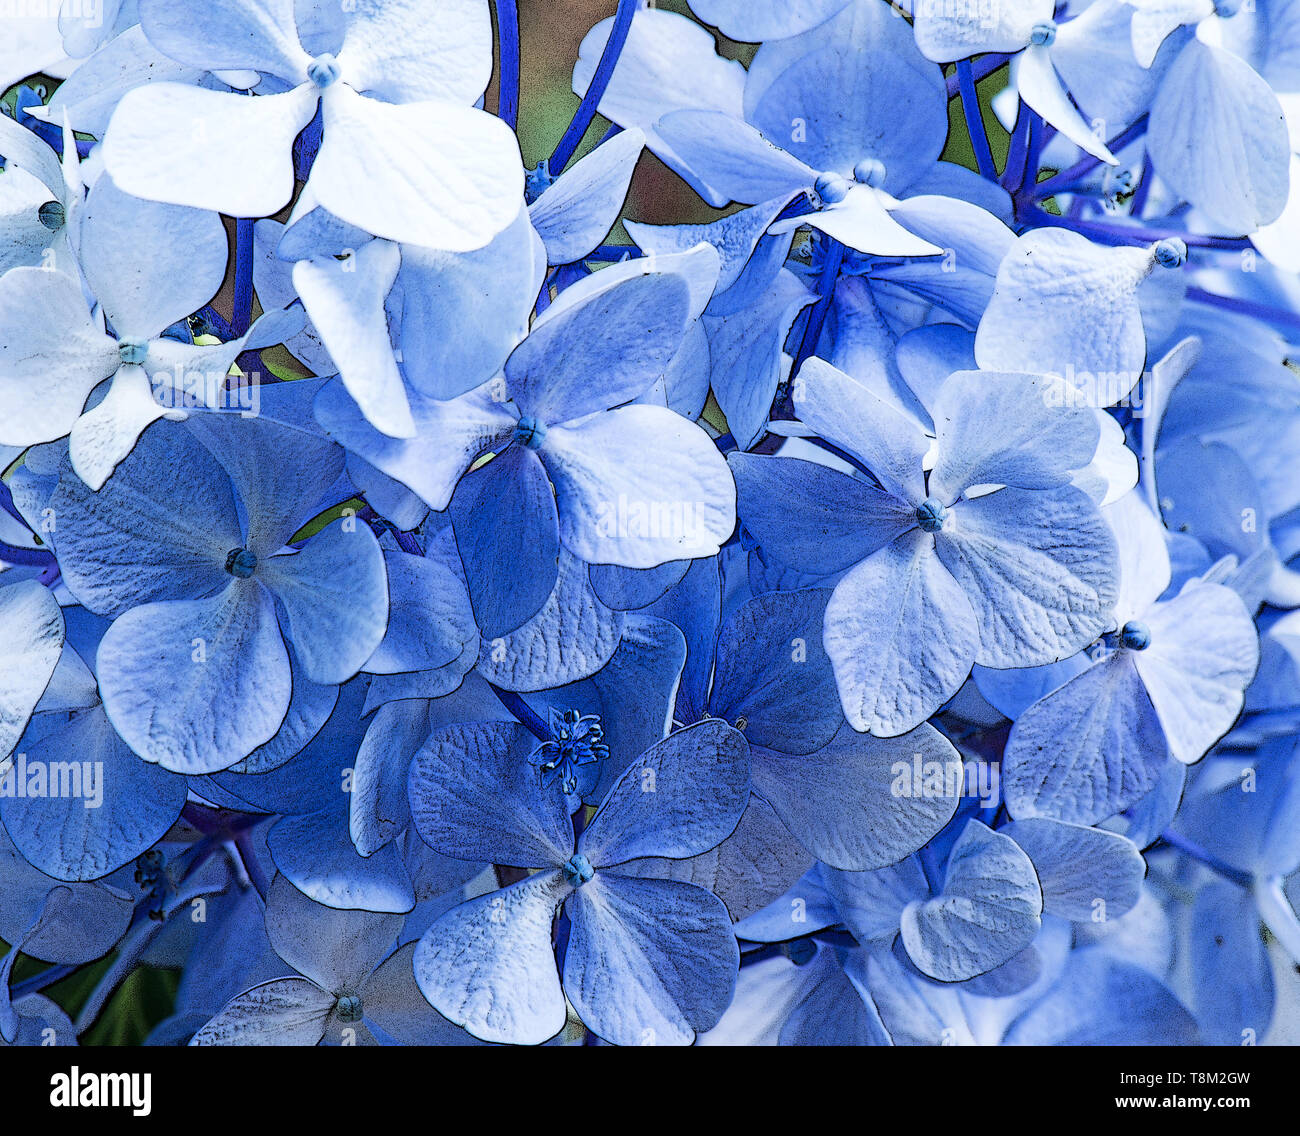 Hydrangeas background - Stock Image